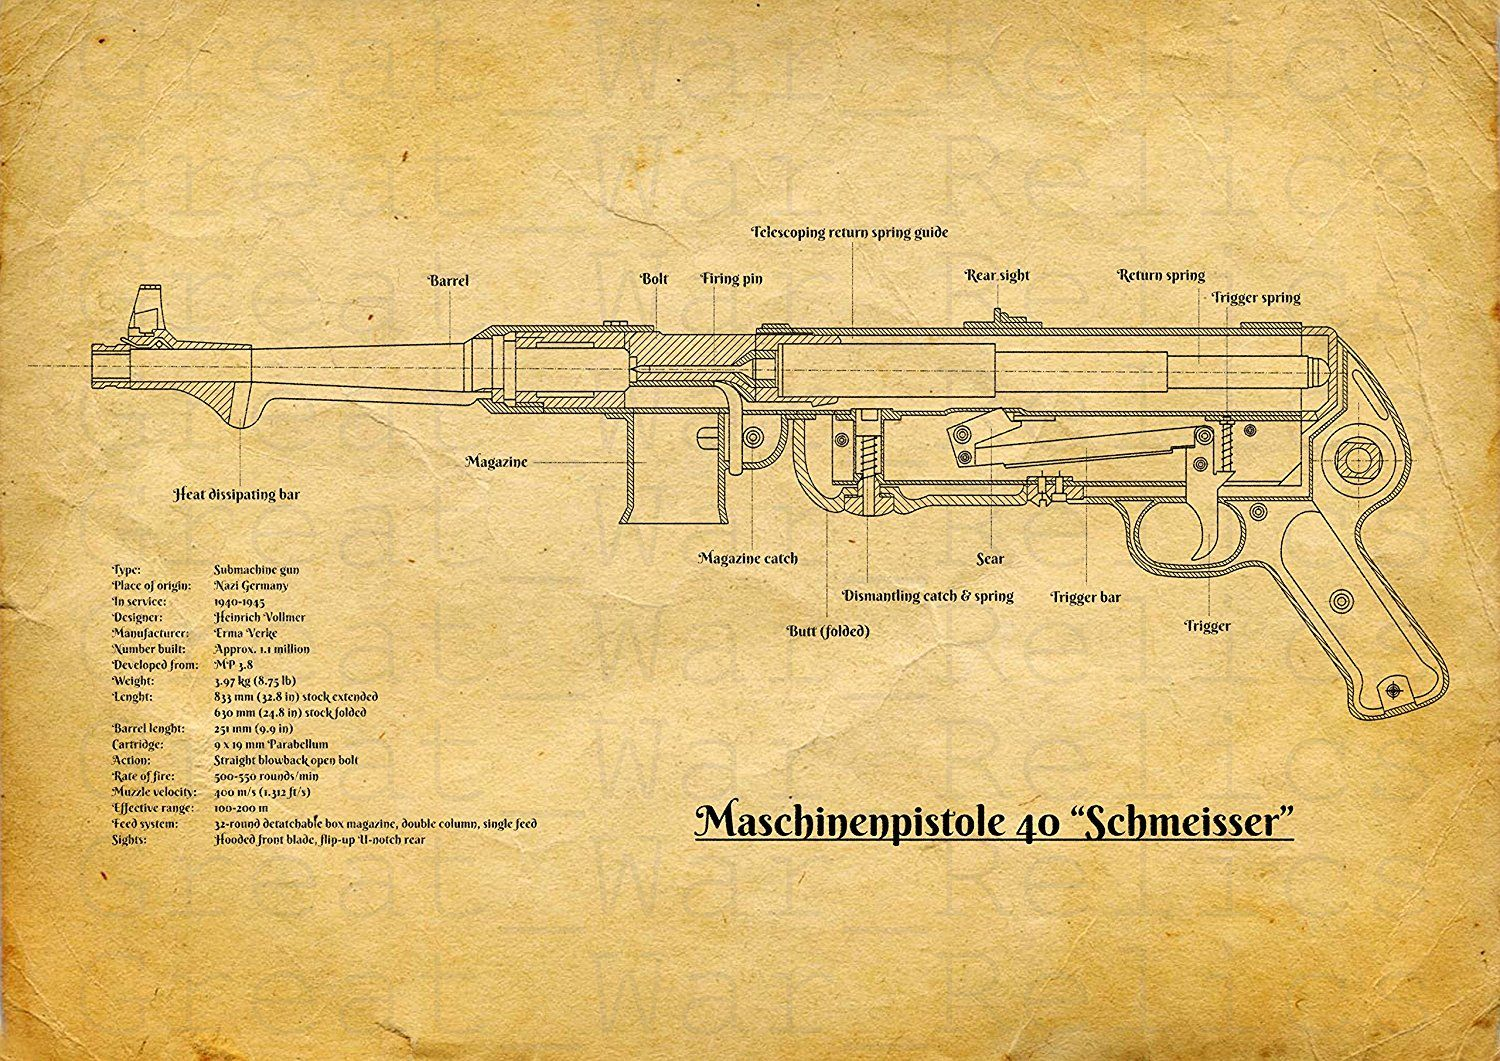 Amazon.com: WWII German Submachine gun MP40 Poster - World War 2 ...